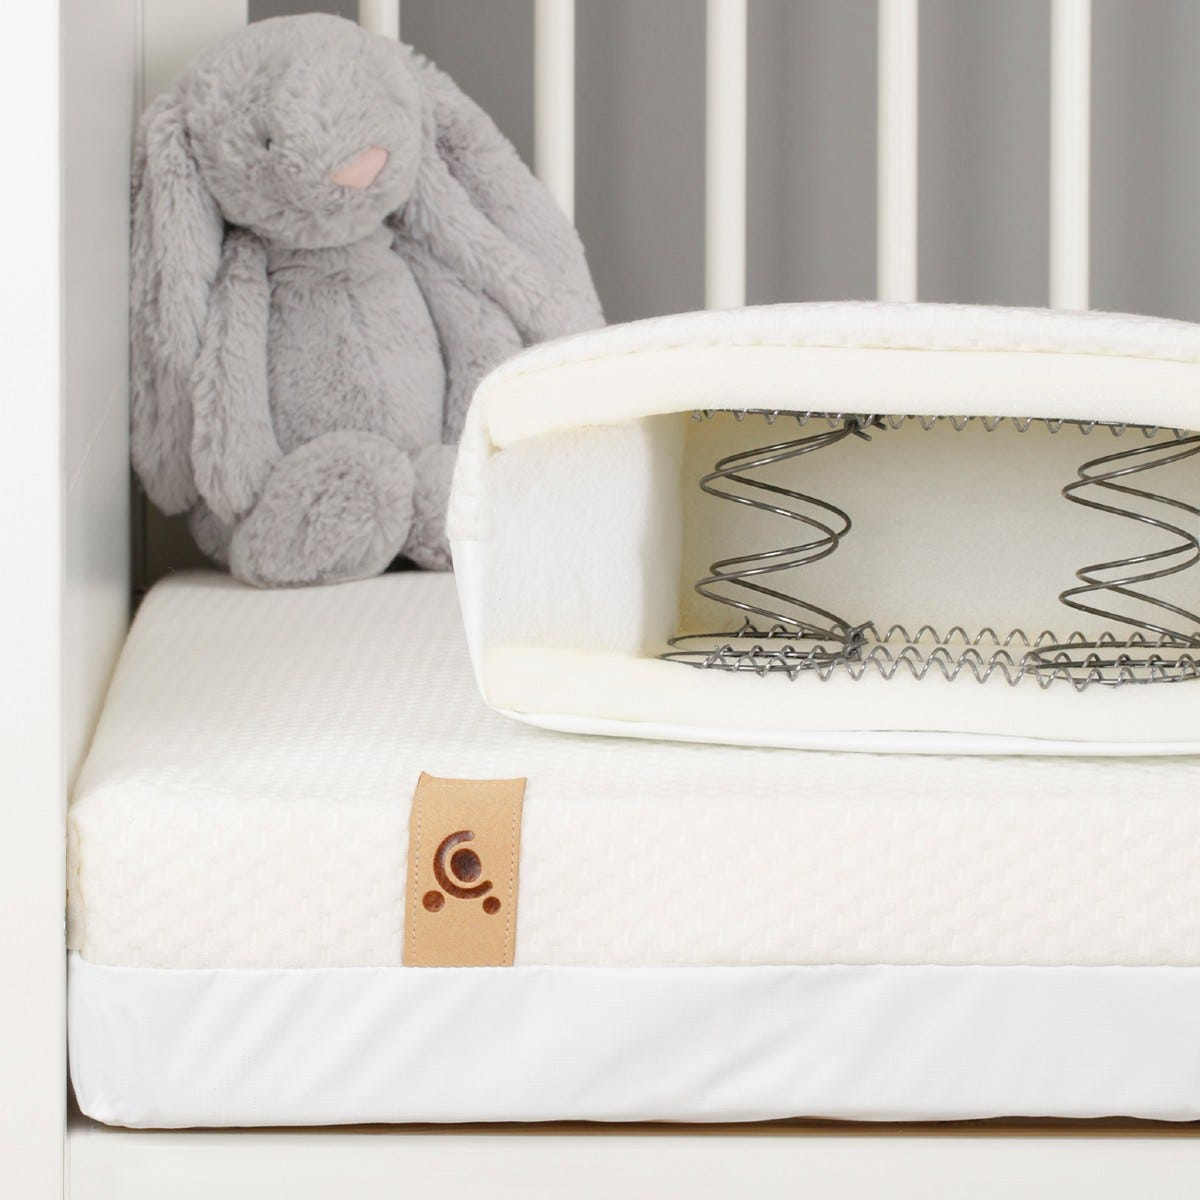 CuddleCo Harmony HypoAllergenic Bamboo Sprung Cot Bed Mattress